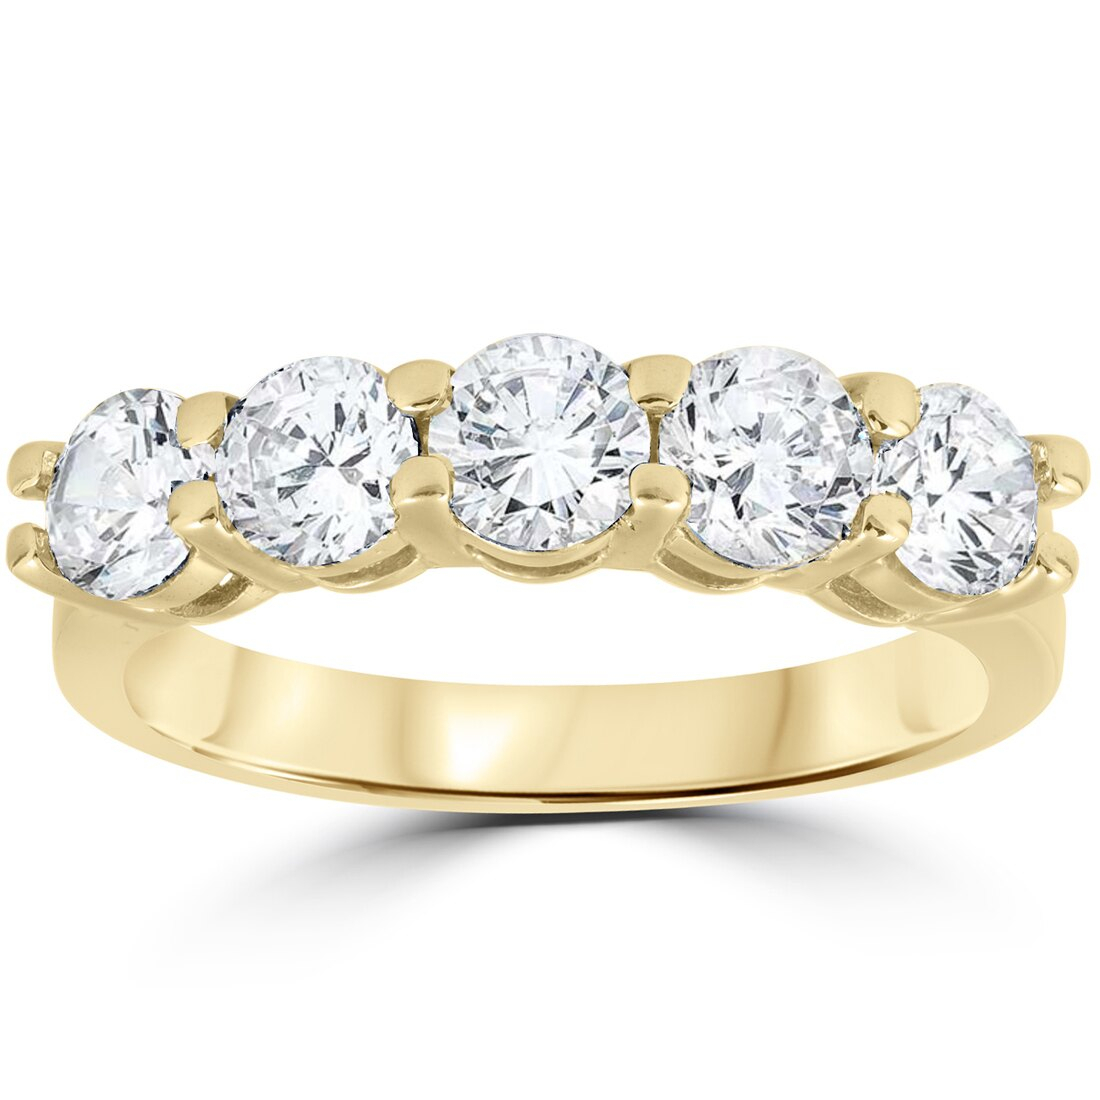 2 Ct Real Diamond Wedding Ring 14K Yellow Gold 5 Stone Womens Anniversary  Band For Most Recently Released Composite Diamond Five Stone Anniversary Bands In White Gold (Gallery 4 of 25)